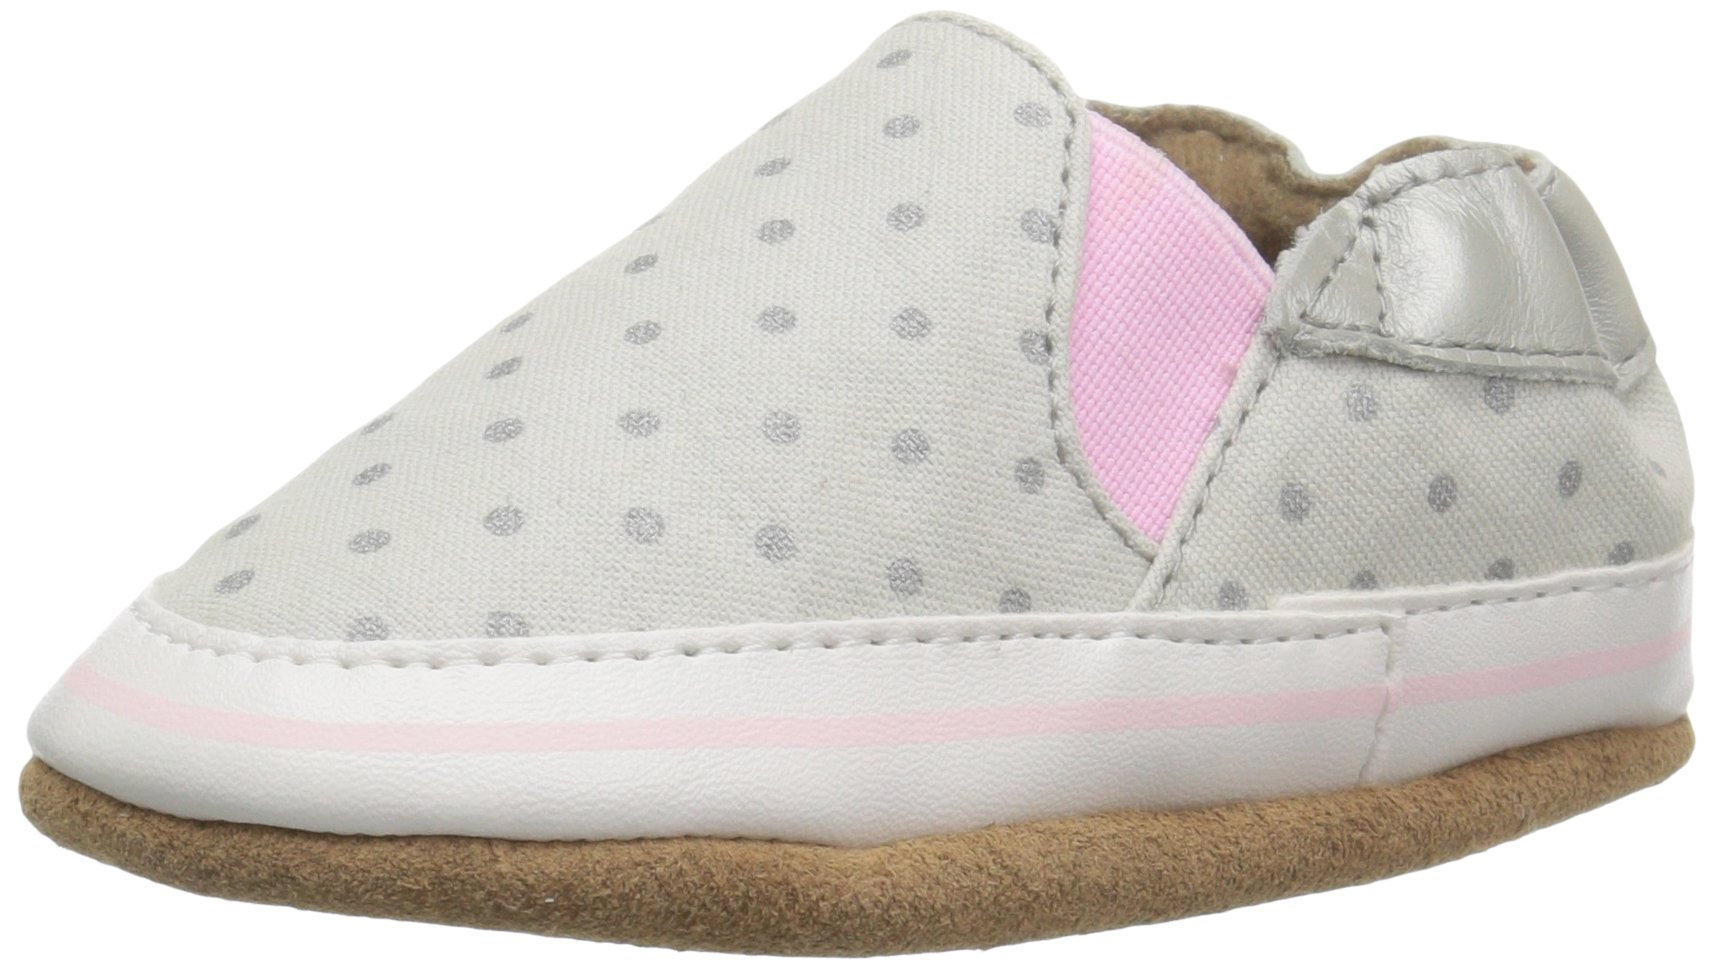 Robeez Girls Crib Shoe, Dot Mania Metallic/Grey, 6-12 Months M US Infant by Robeez